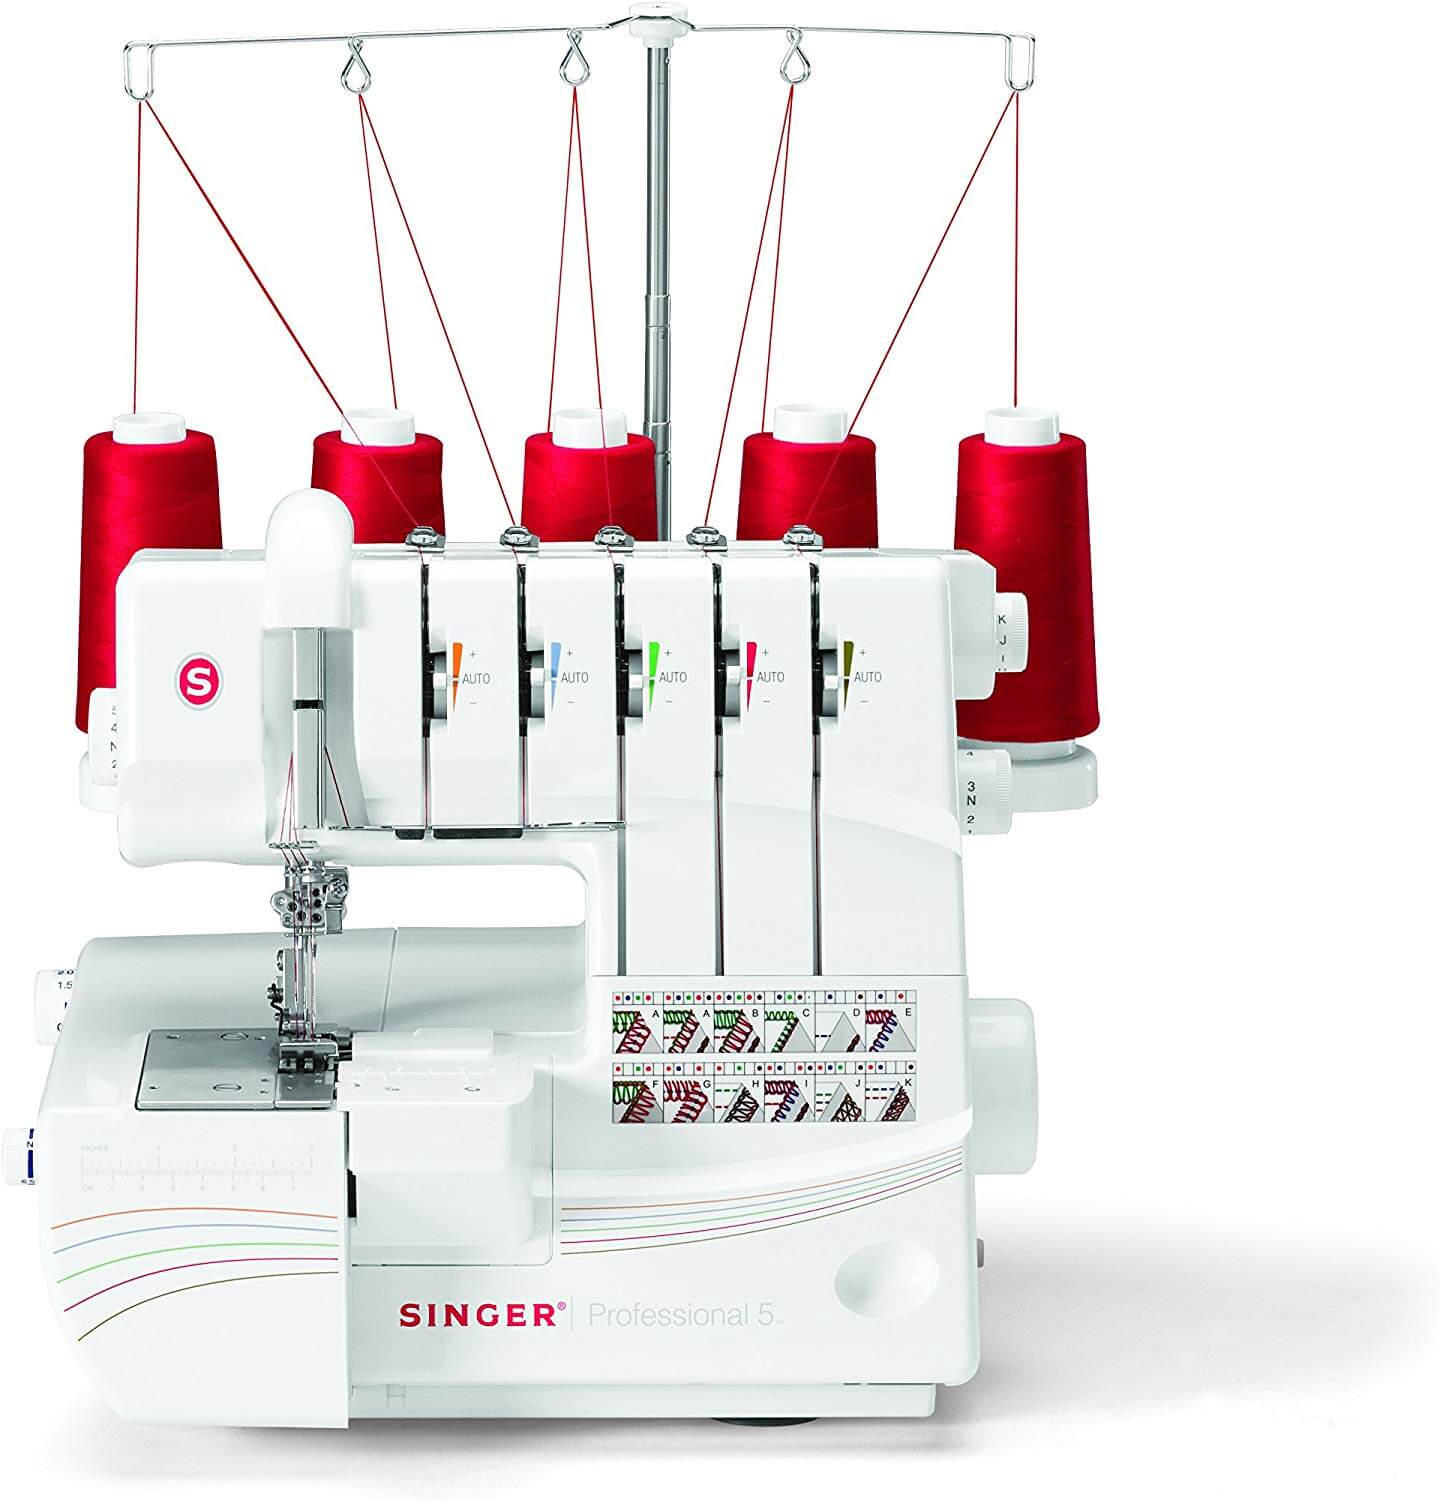 SINGER Professional 5 14T968DC Serger with 2-3-4-5 Threaded Capability